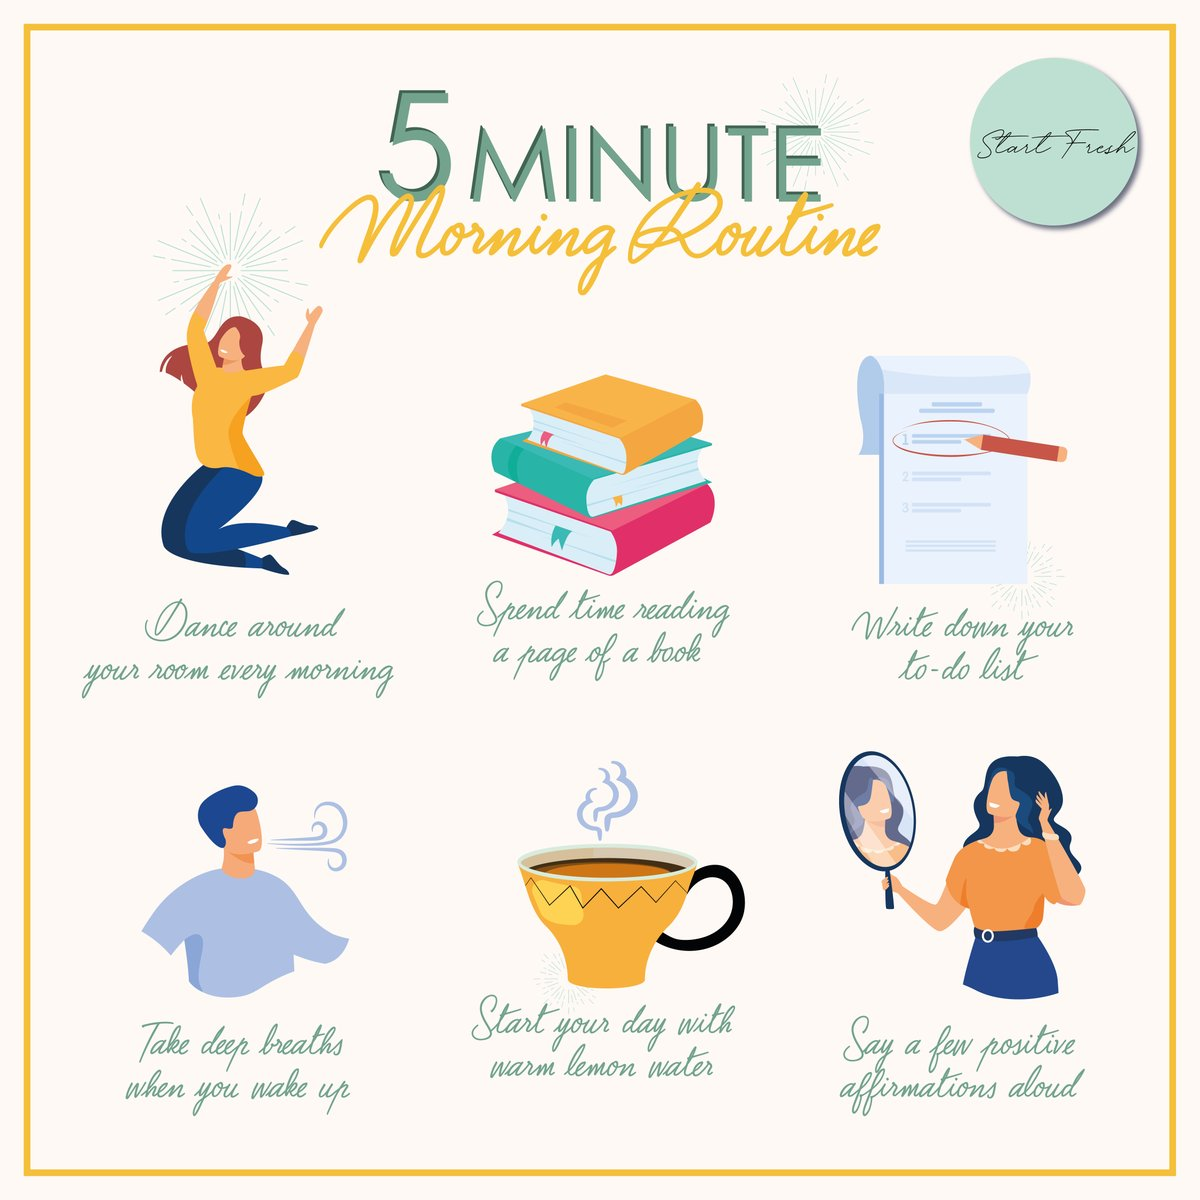 5 minutes is all you need to make the most of your morning and wake up happy! 🙂  خمس دقائق هي كل ما تحتاجه للإستفاده القصوى من صباحك والإستيقاظ سعيداً 🙂 https://t.co/ZgYbfmtPOY